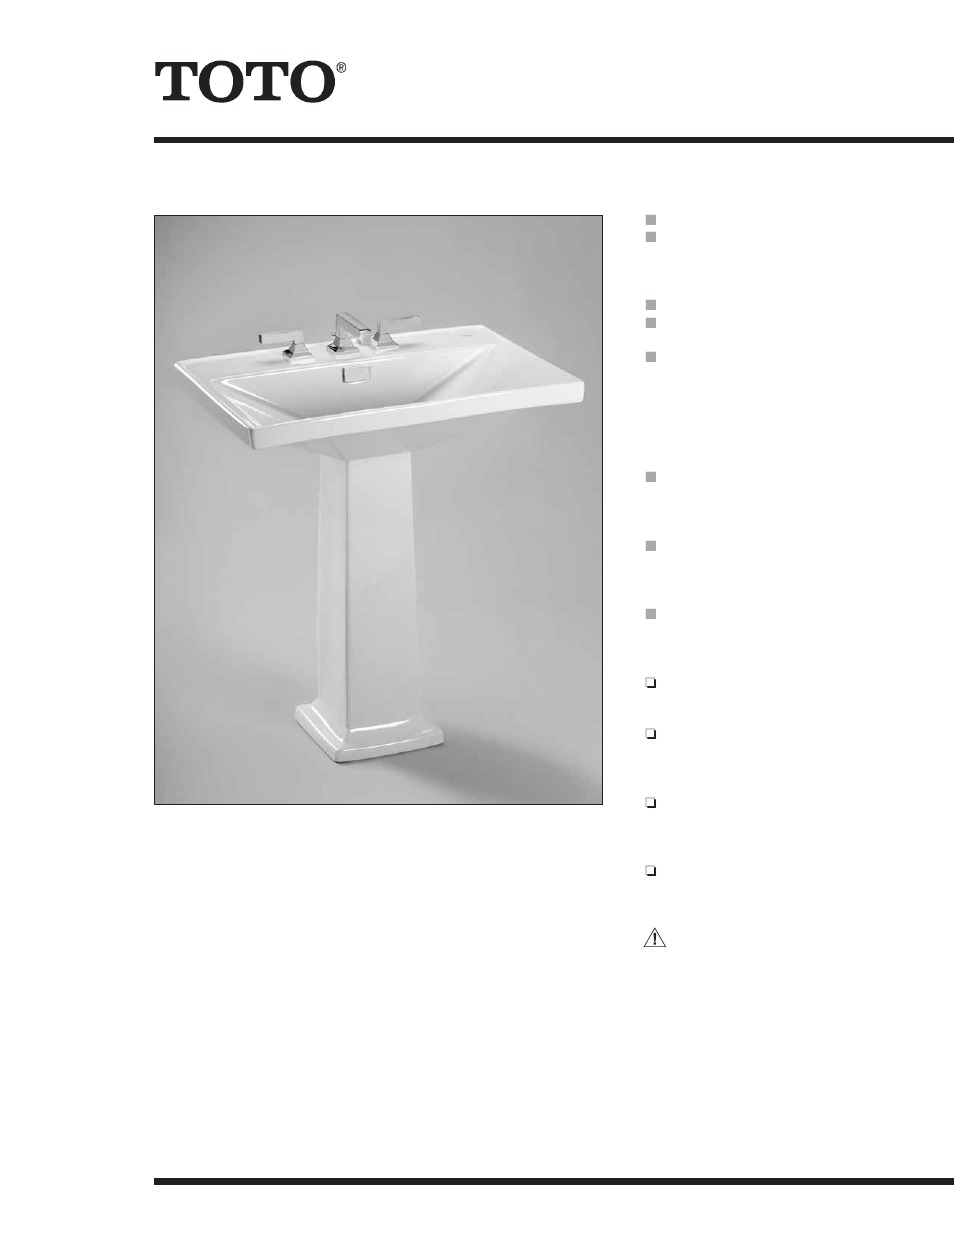 Factory Direct Hardware Toto LT930.8 User Manual   2 pages